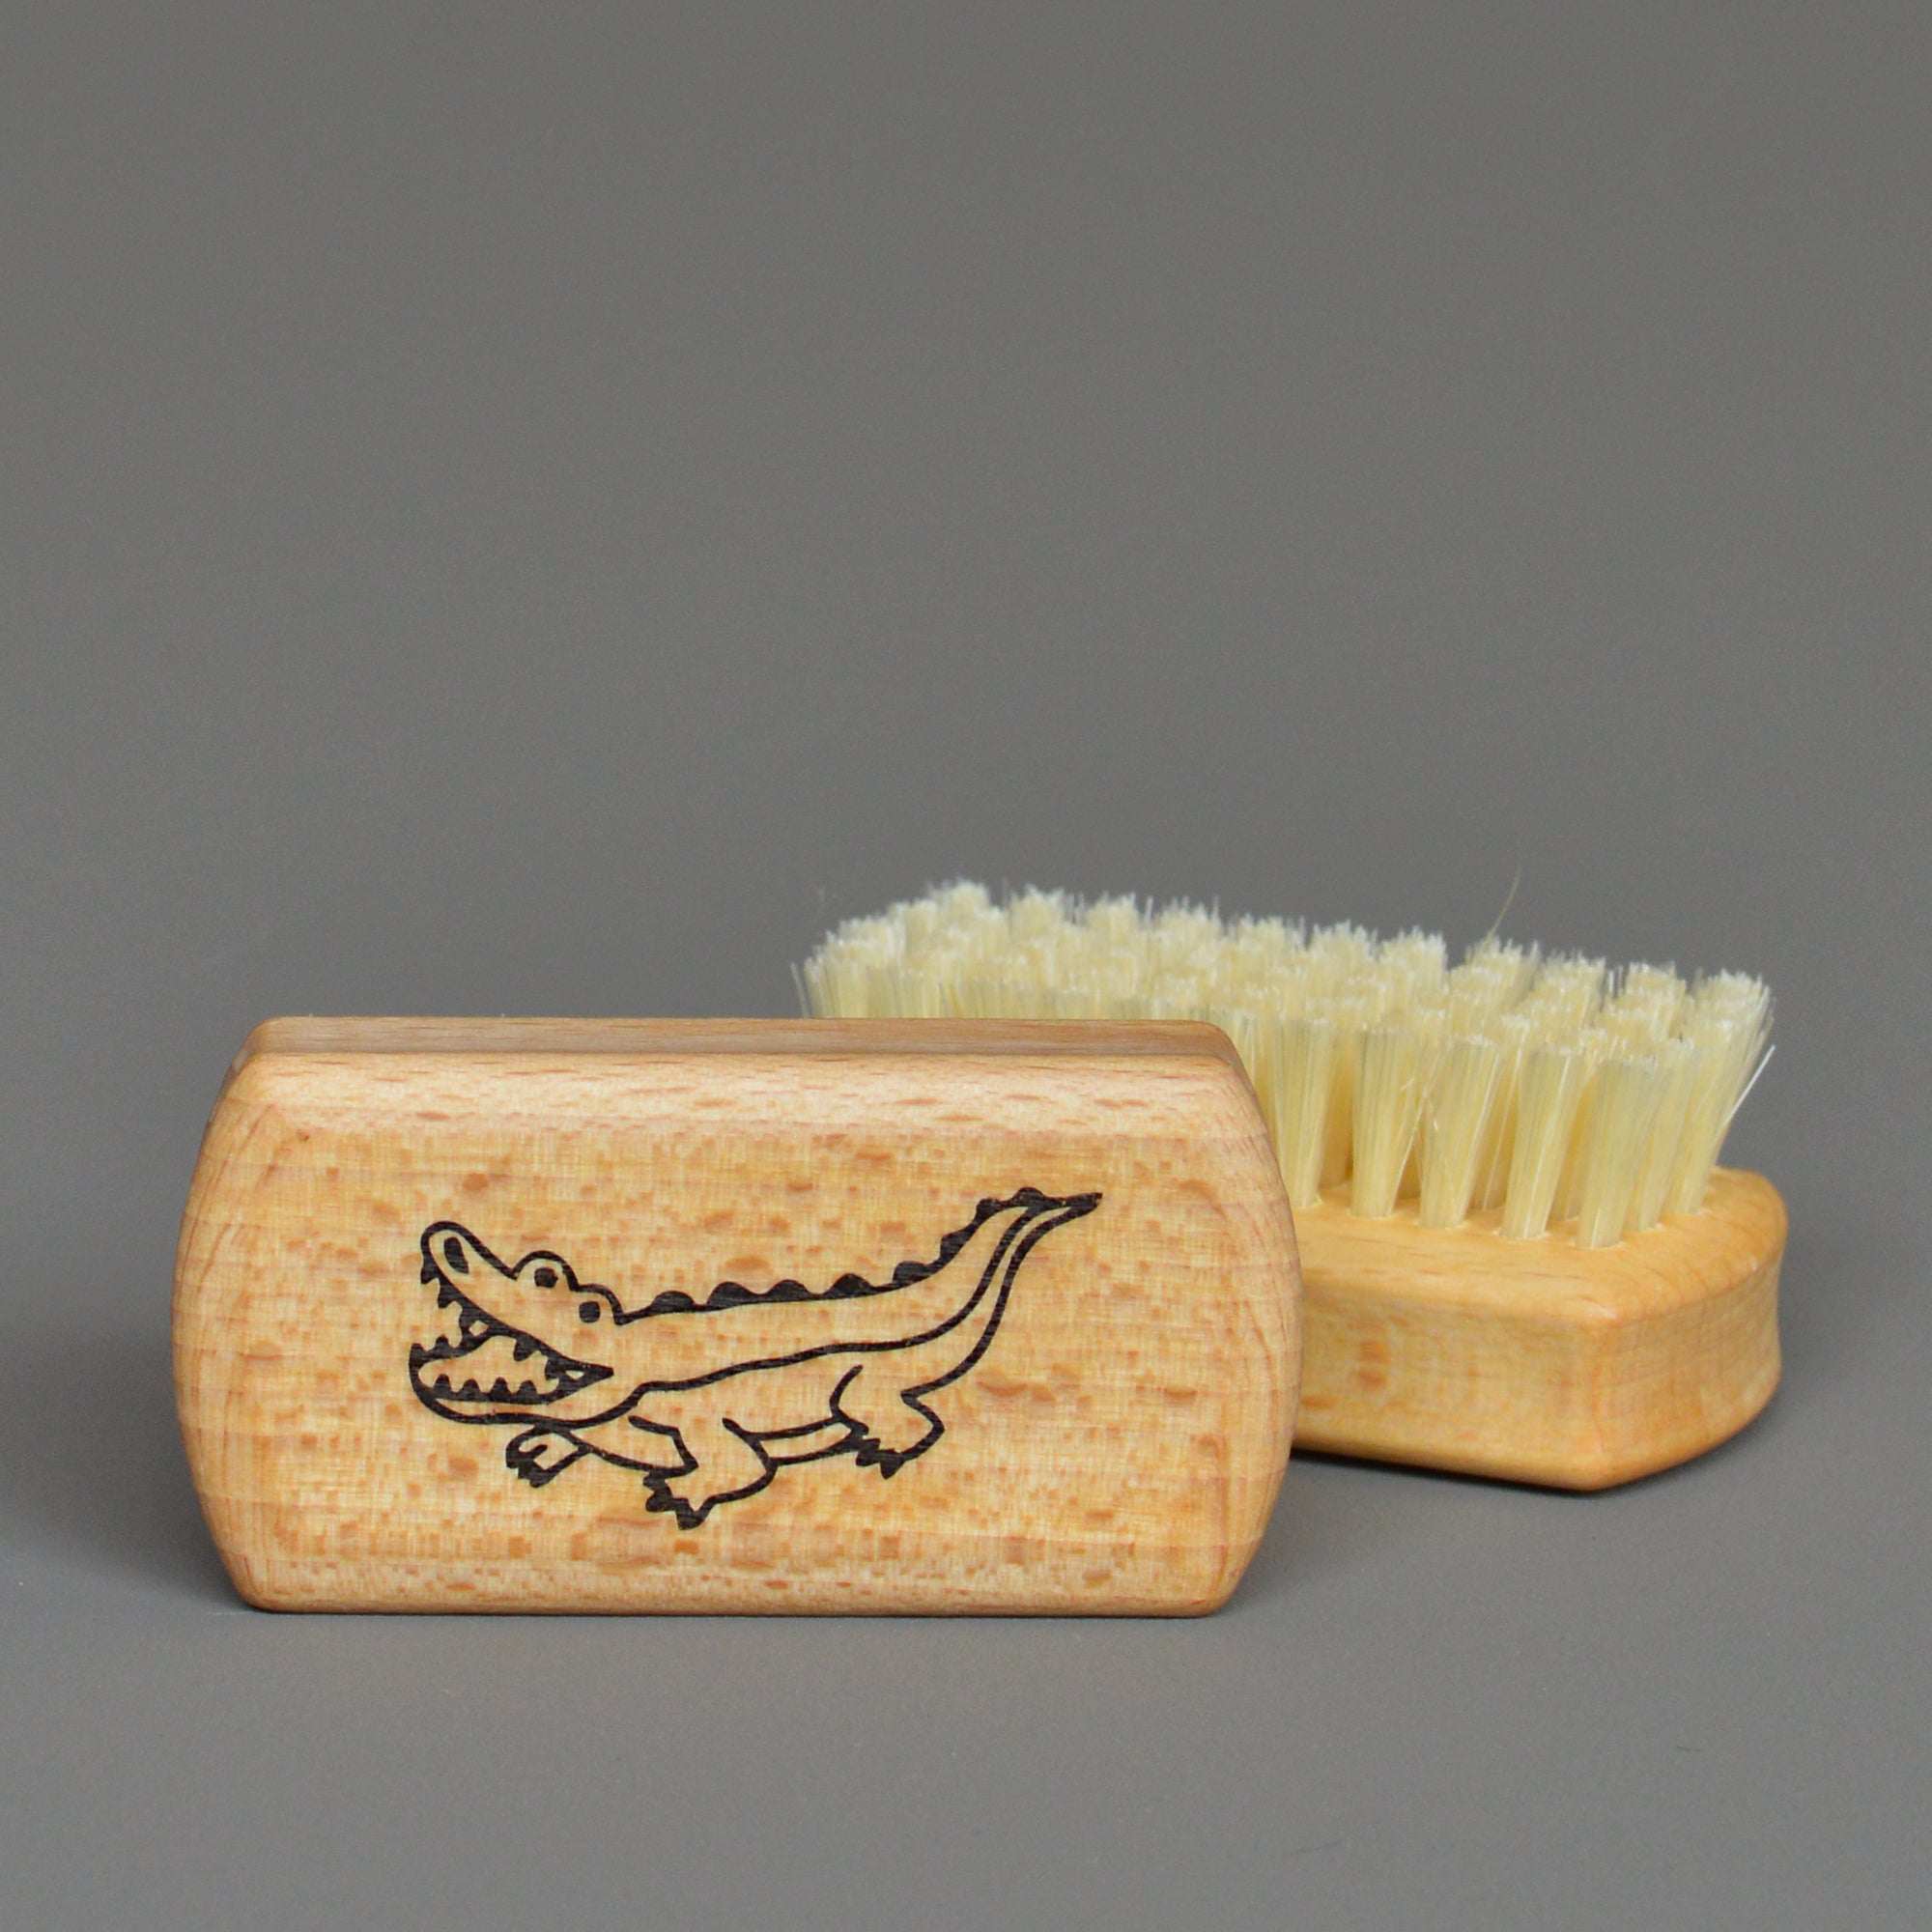 Nail Brush with Crocodile by Redecker